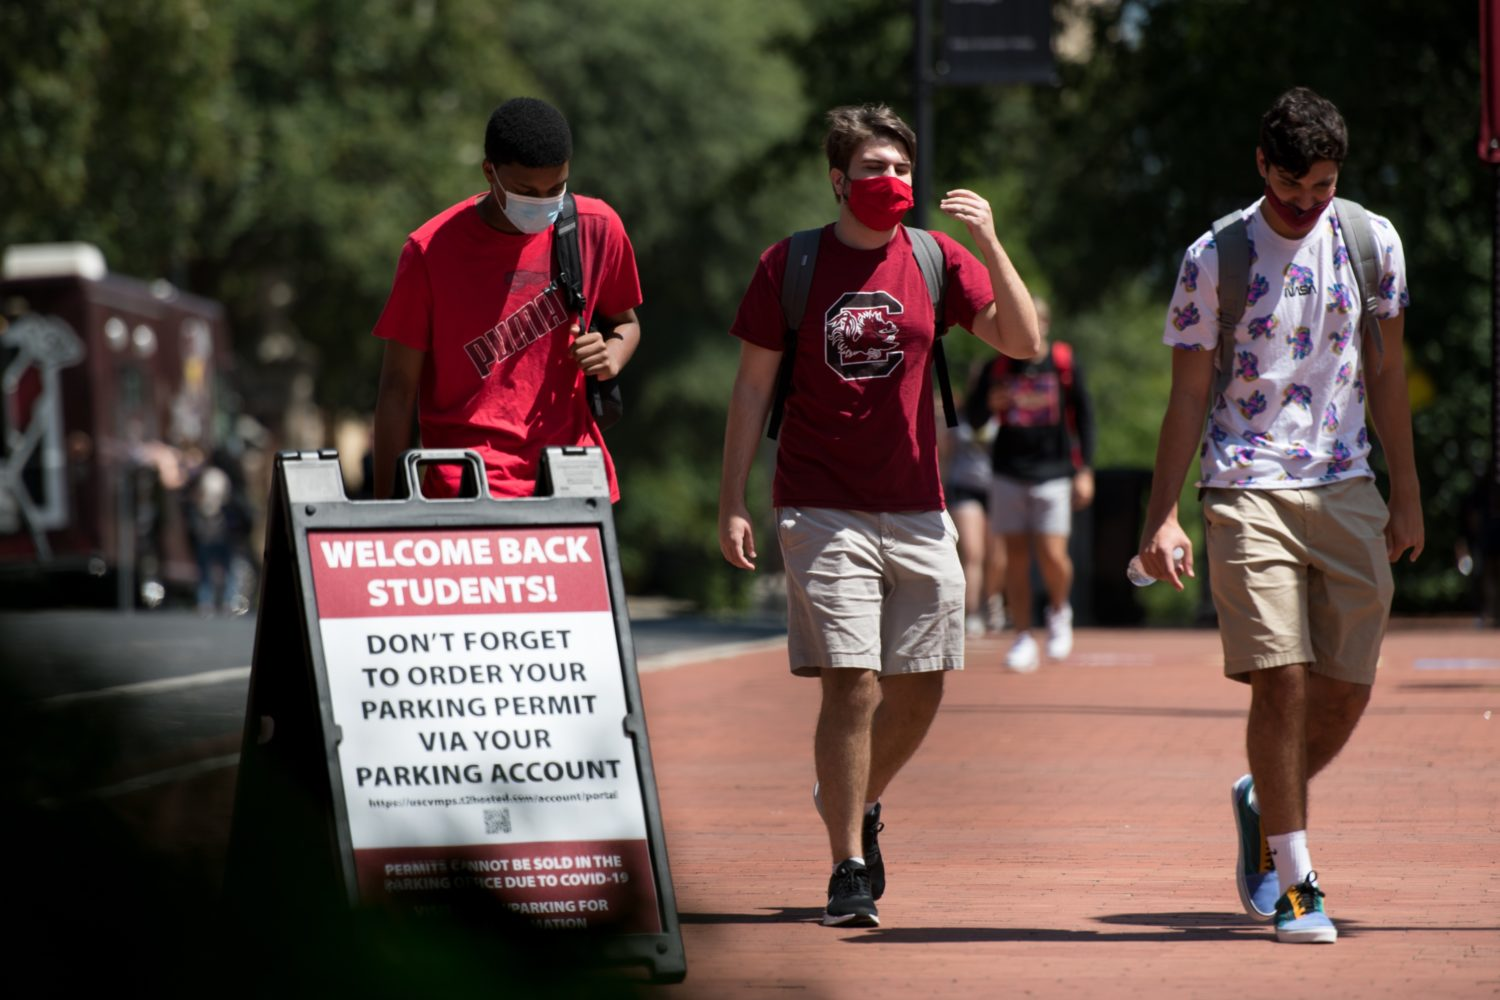 """Three university students with backpacks and masks on pass outdoor sign that says """"WELCOME BACK STUDENTS"""""""